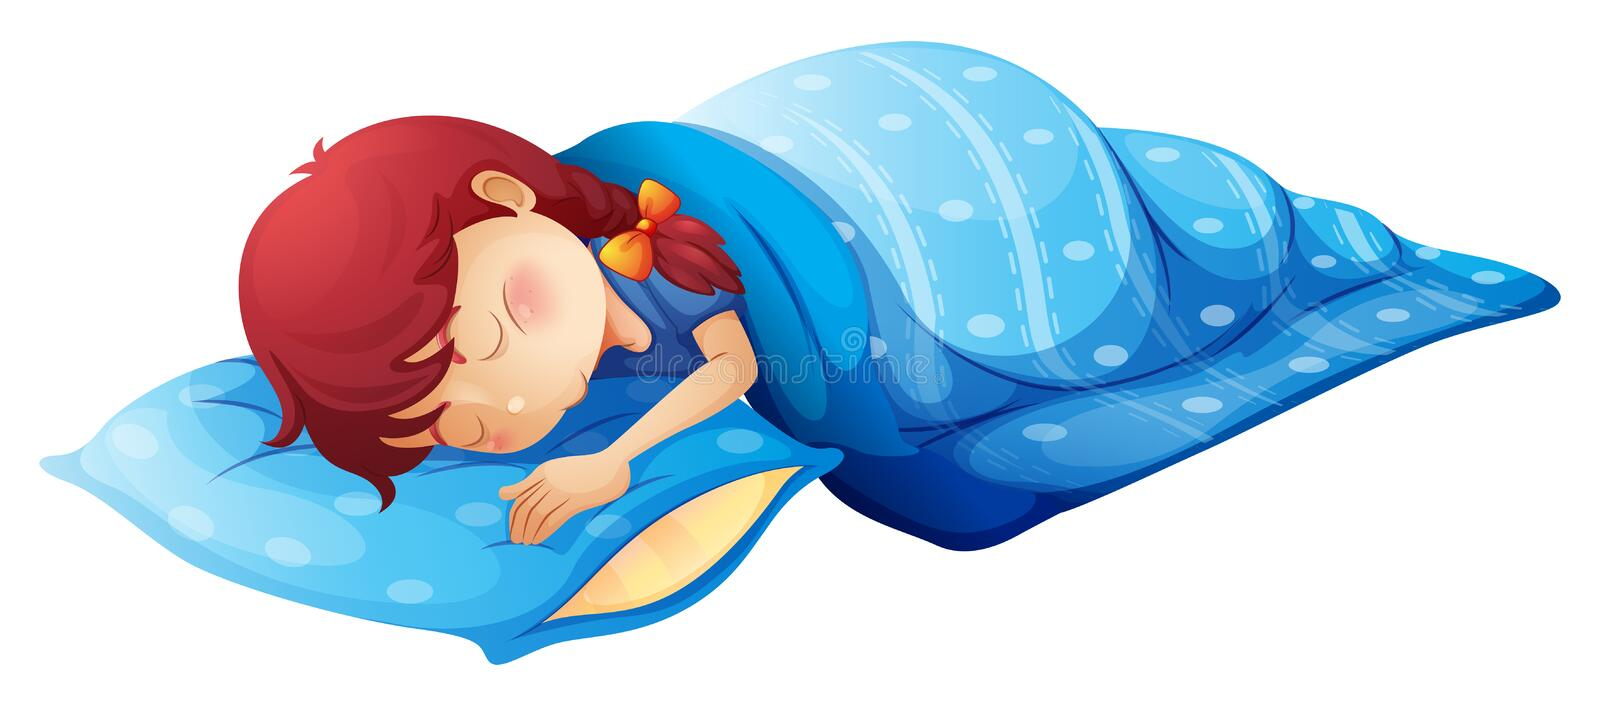 A sleeping child stock illustration